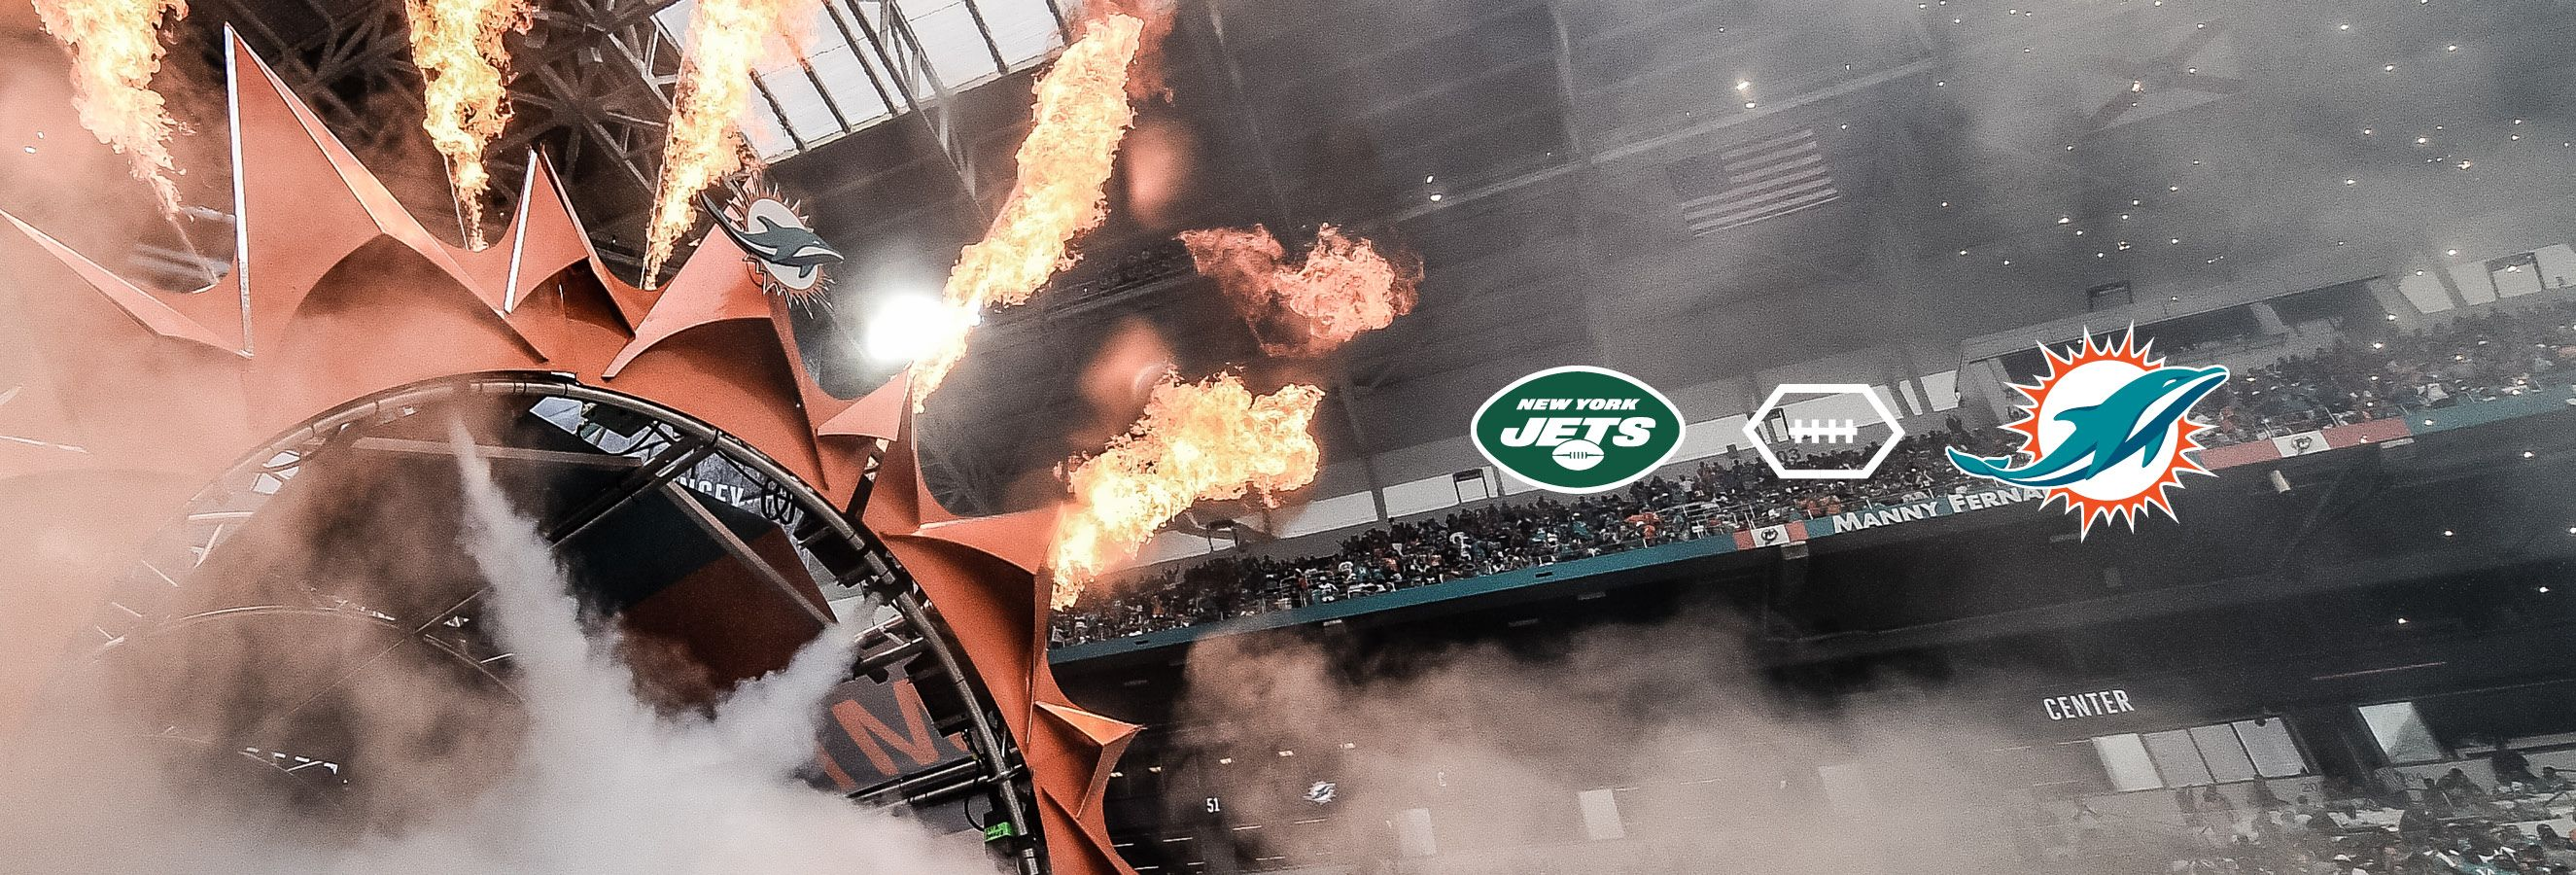 Home_Game_Invites_Jets